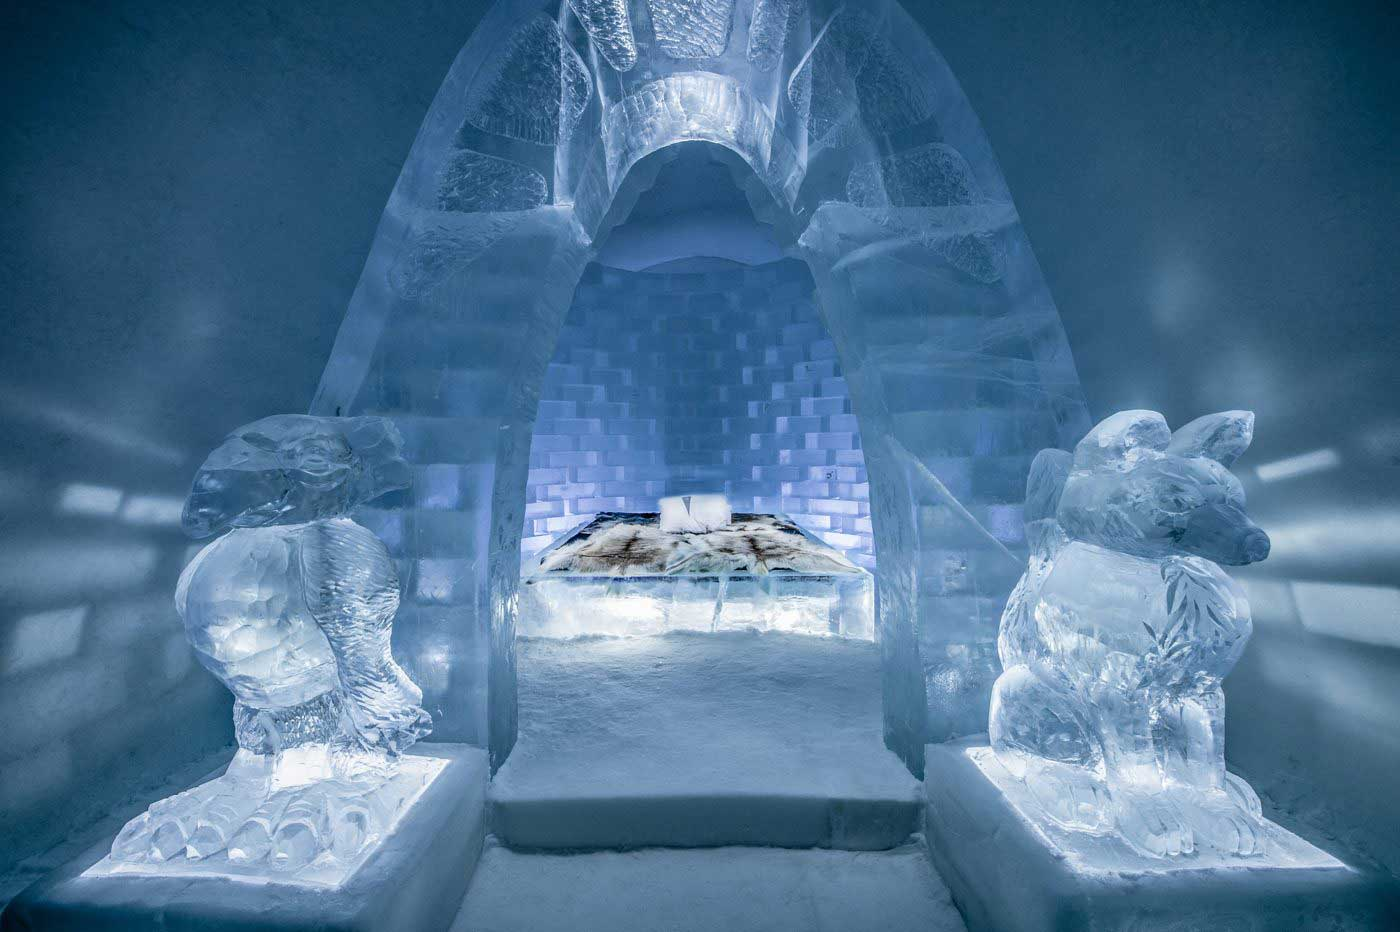 This year's Icehotel has forest, ocean, and sweet shop-themed rooms